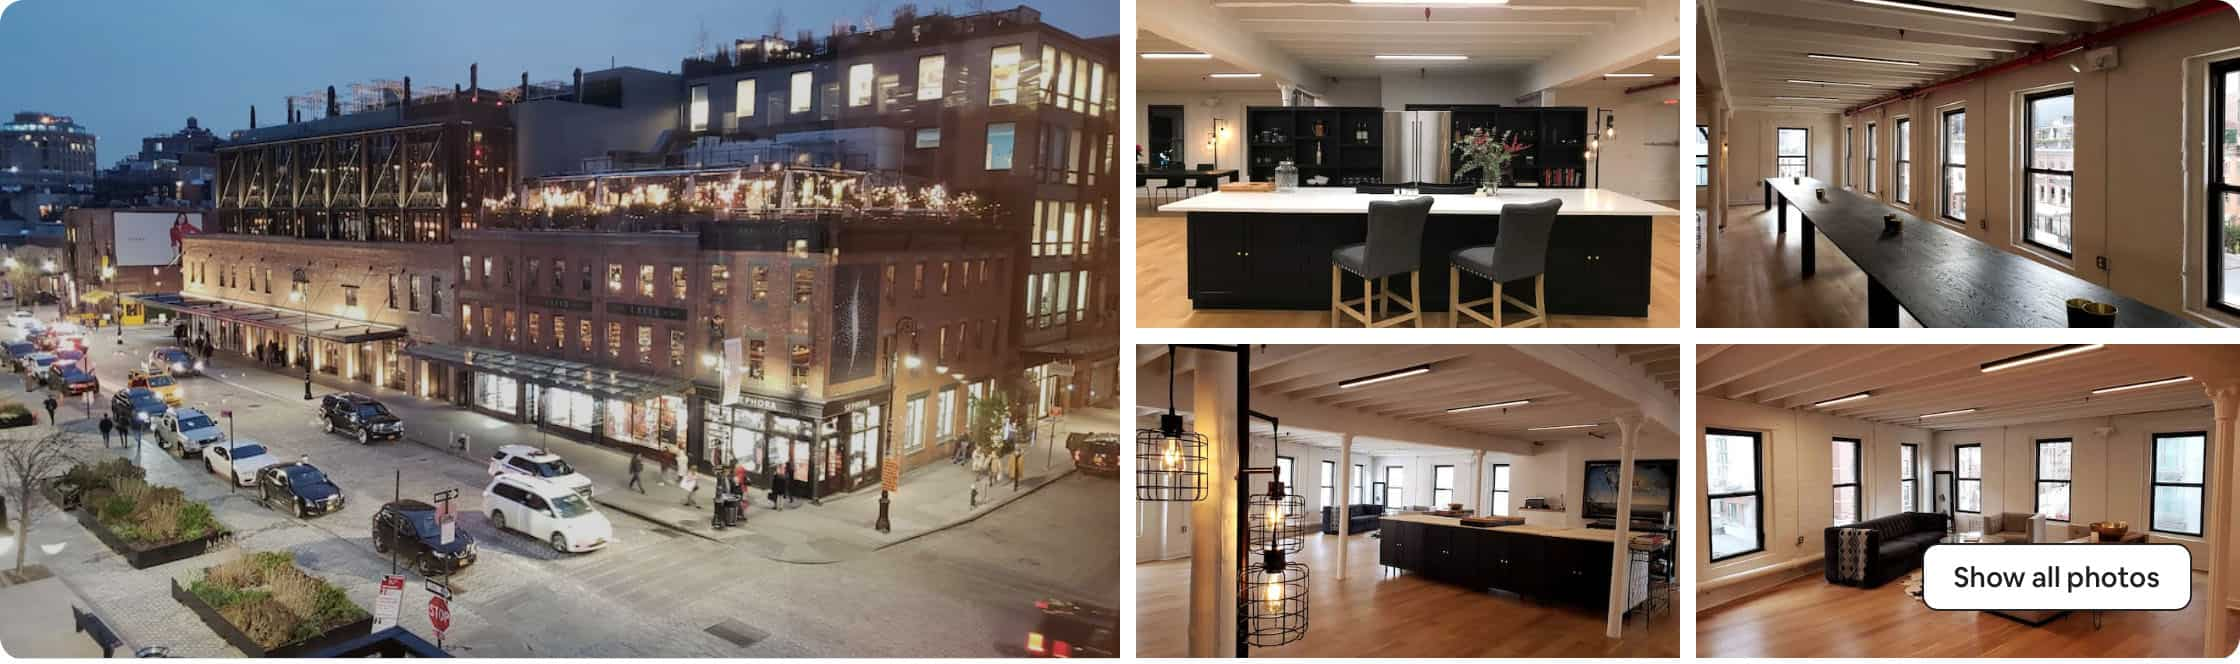 Meatpacking district loft space nyc